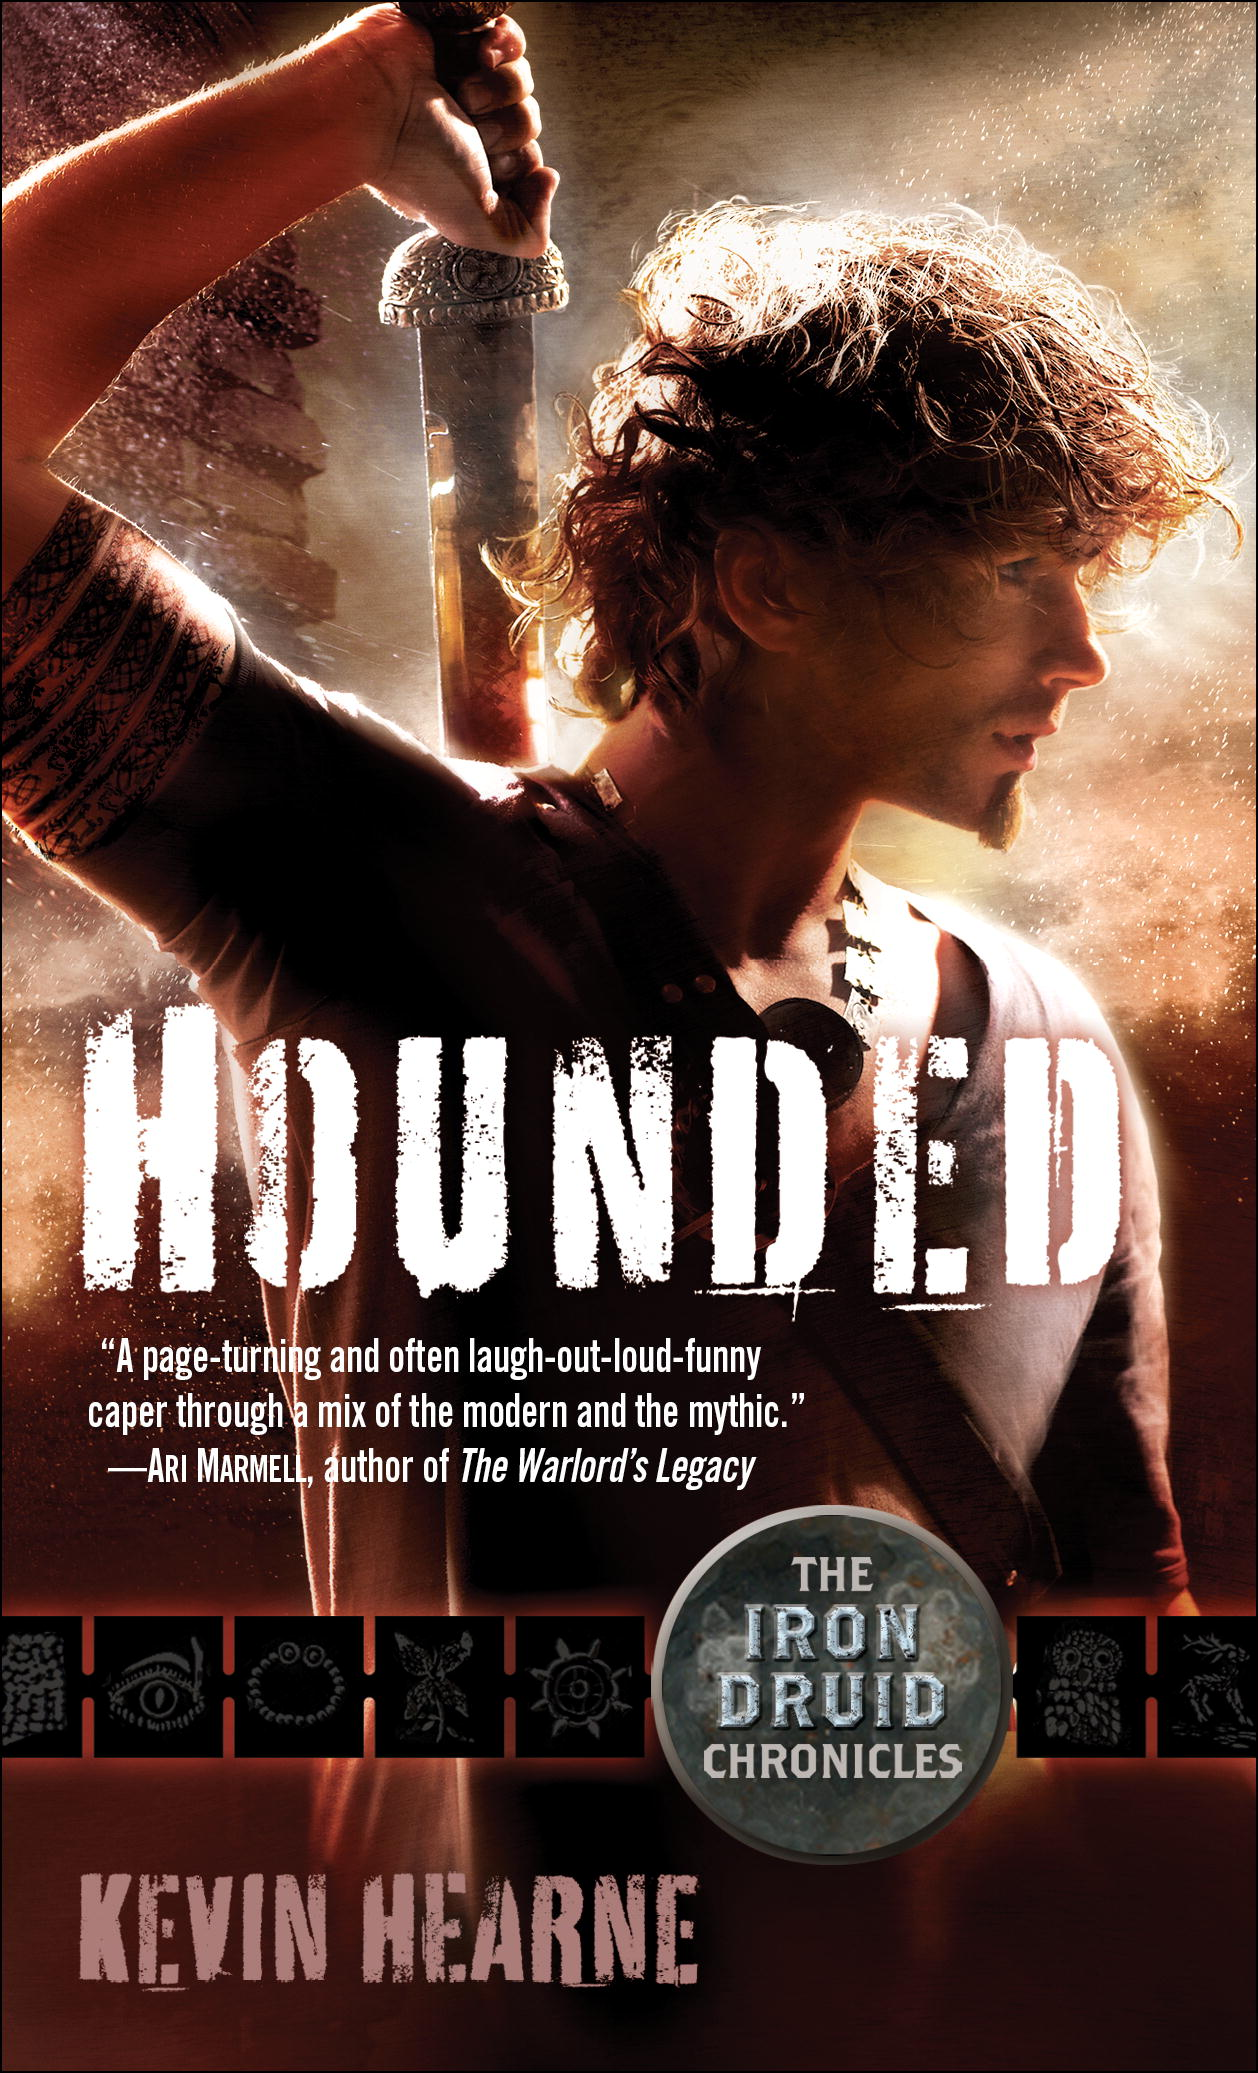 HOUNDED is now available! I'm published!